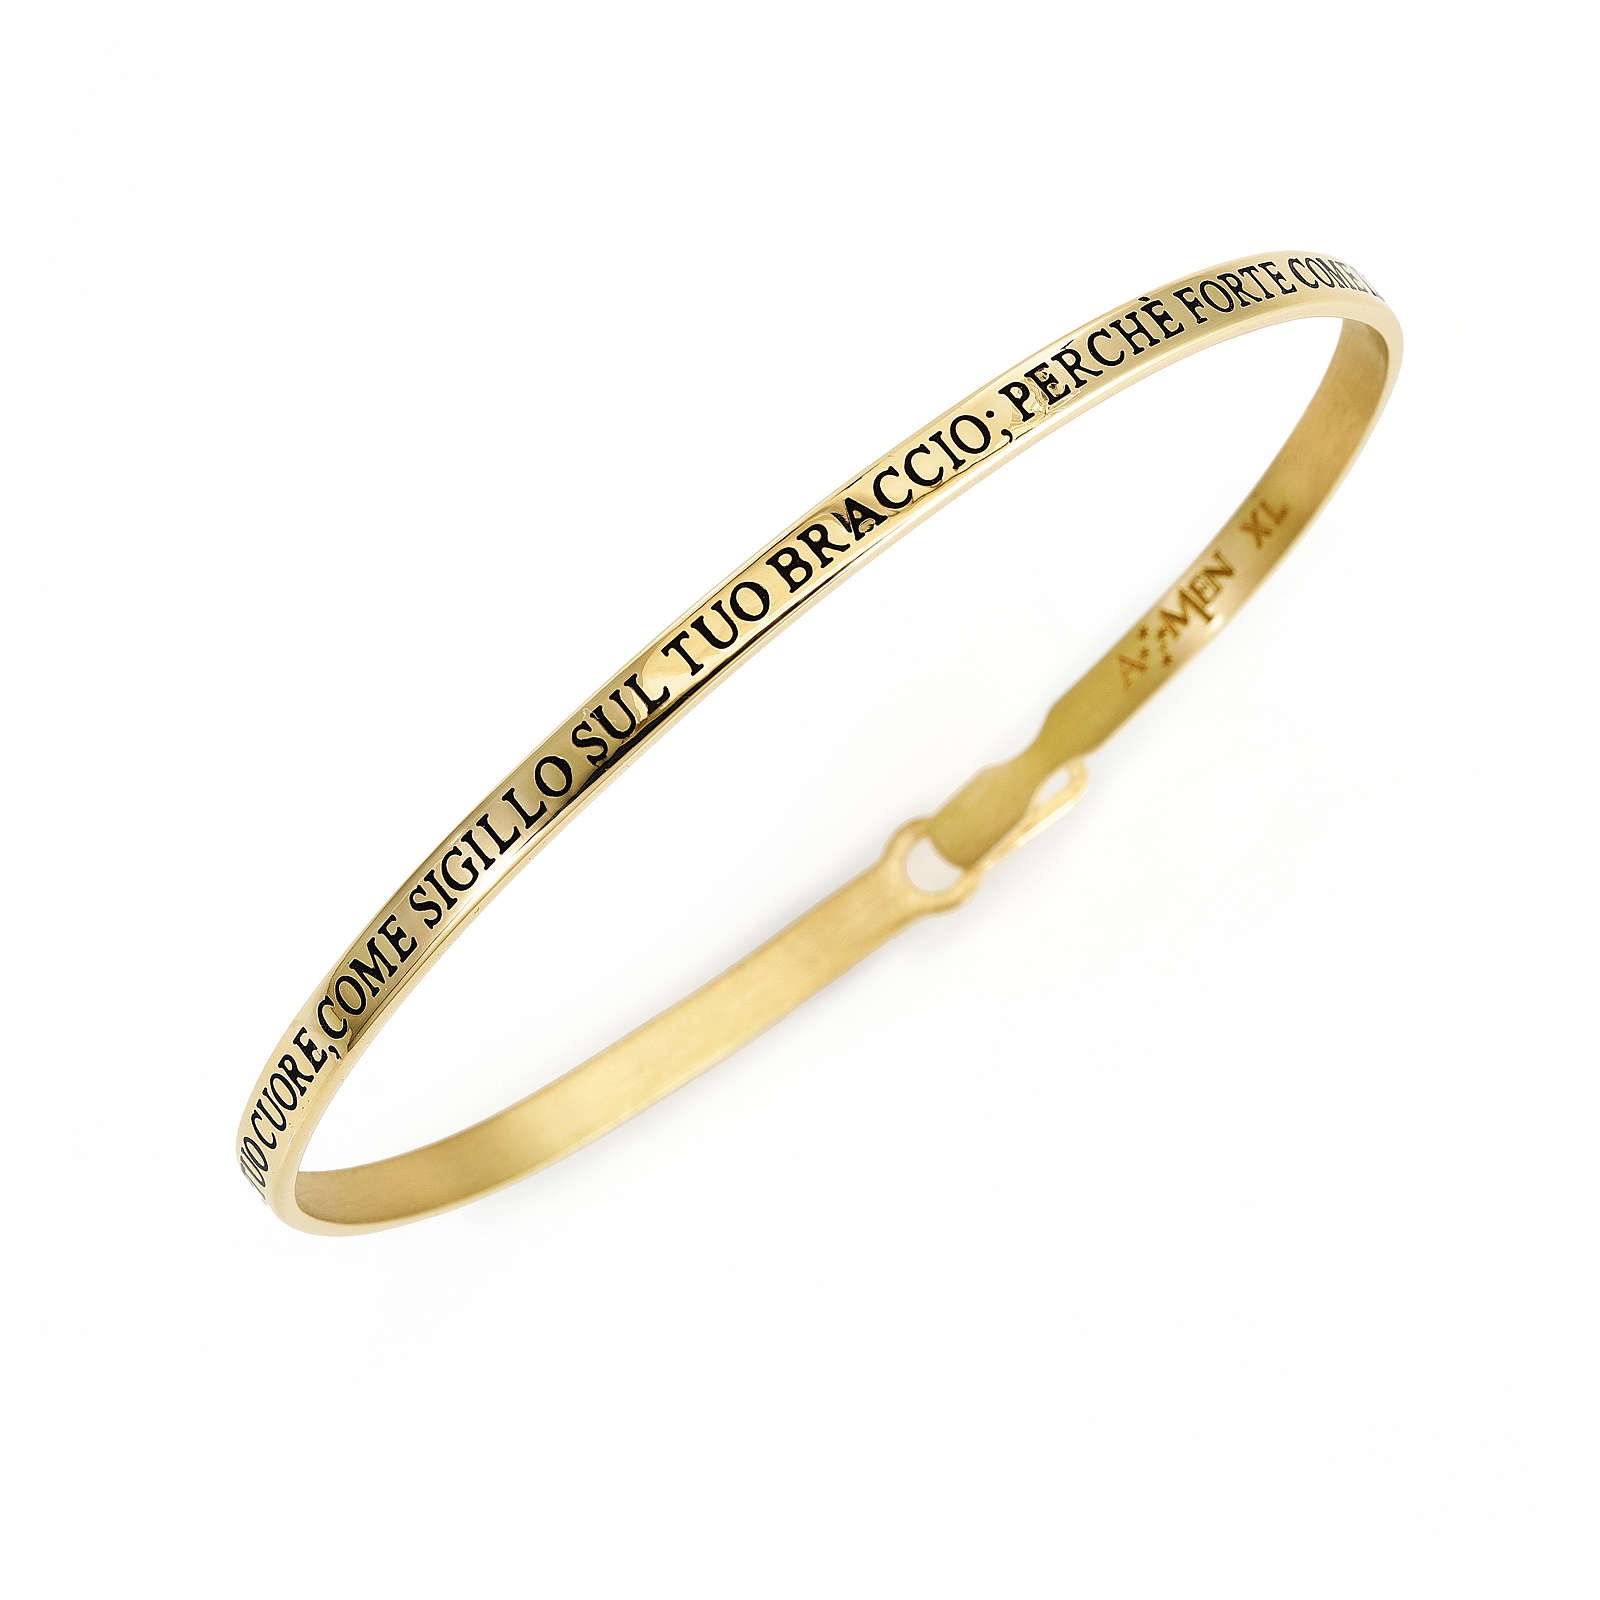 Song of Songs Bangle Bracelet , gold finish, AMEN 4